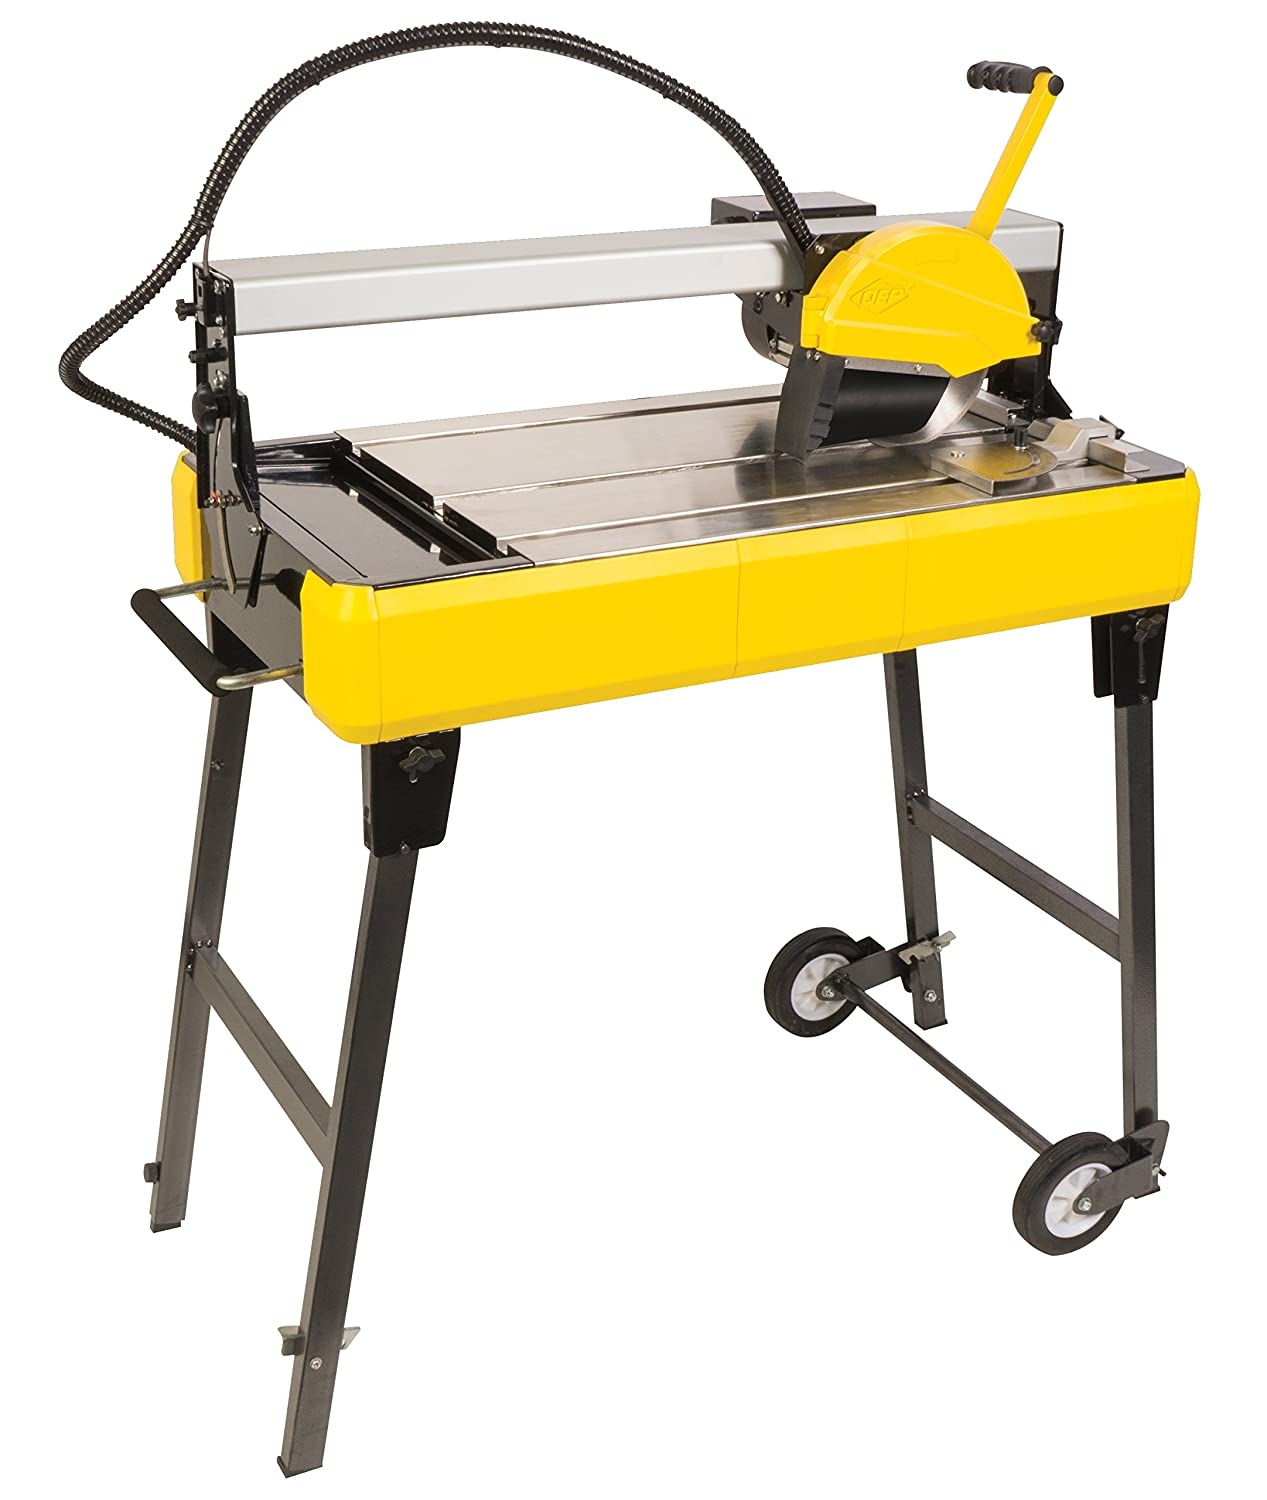 product image of QEP Tile saw